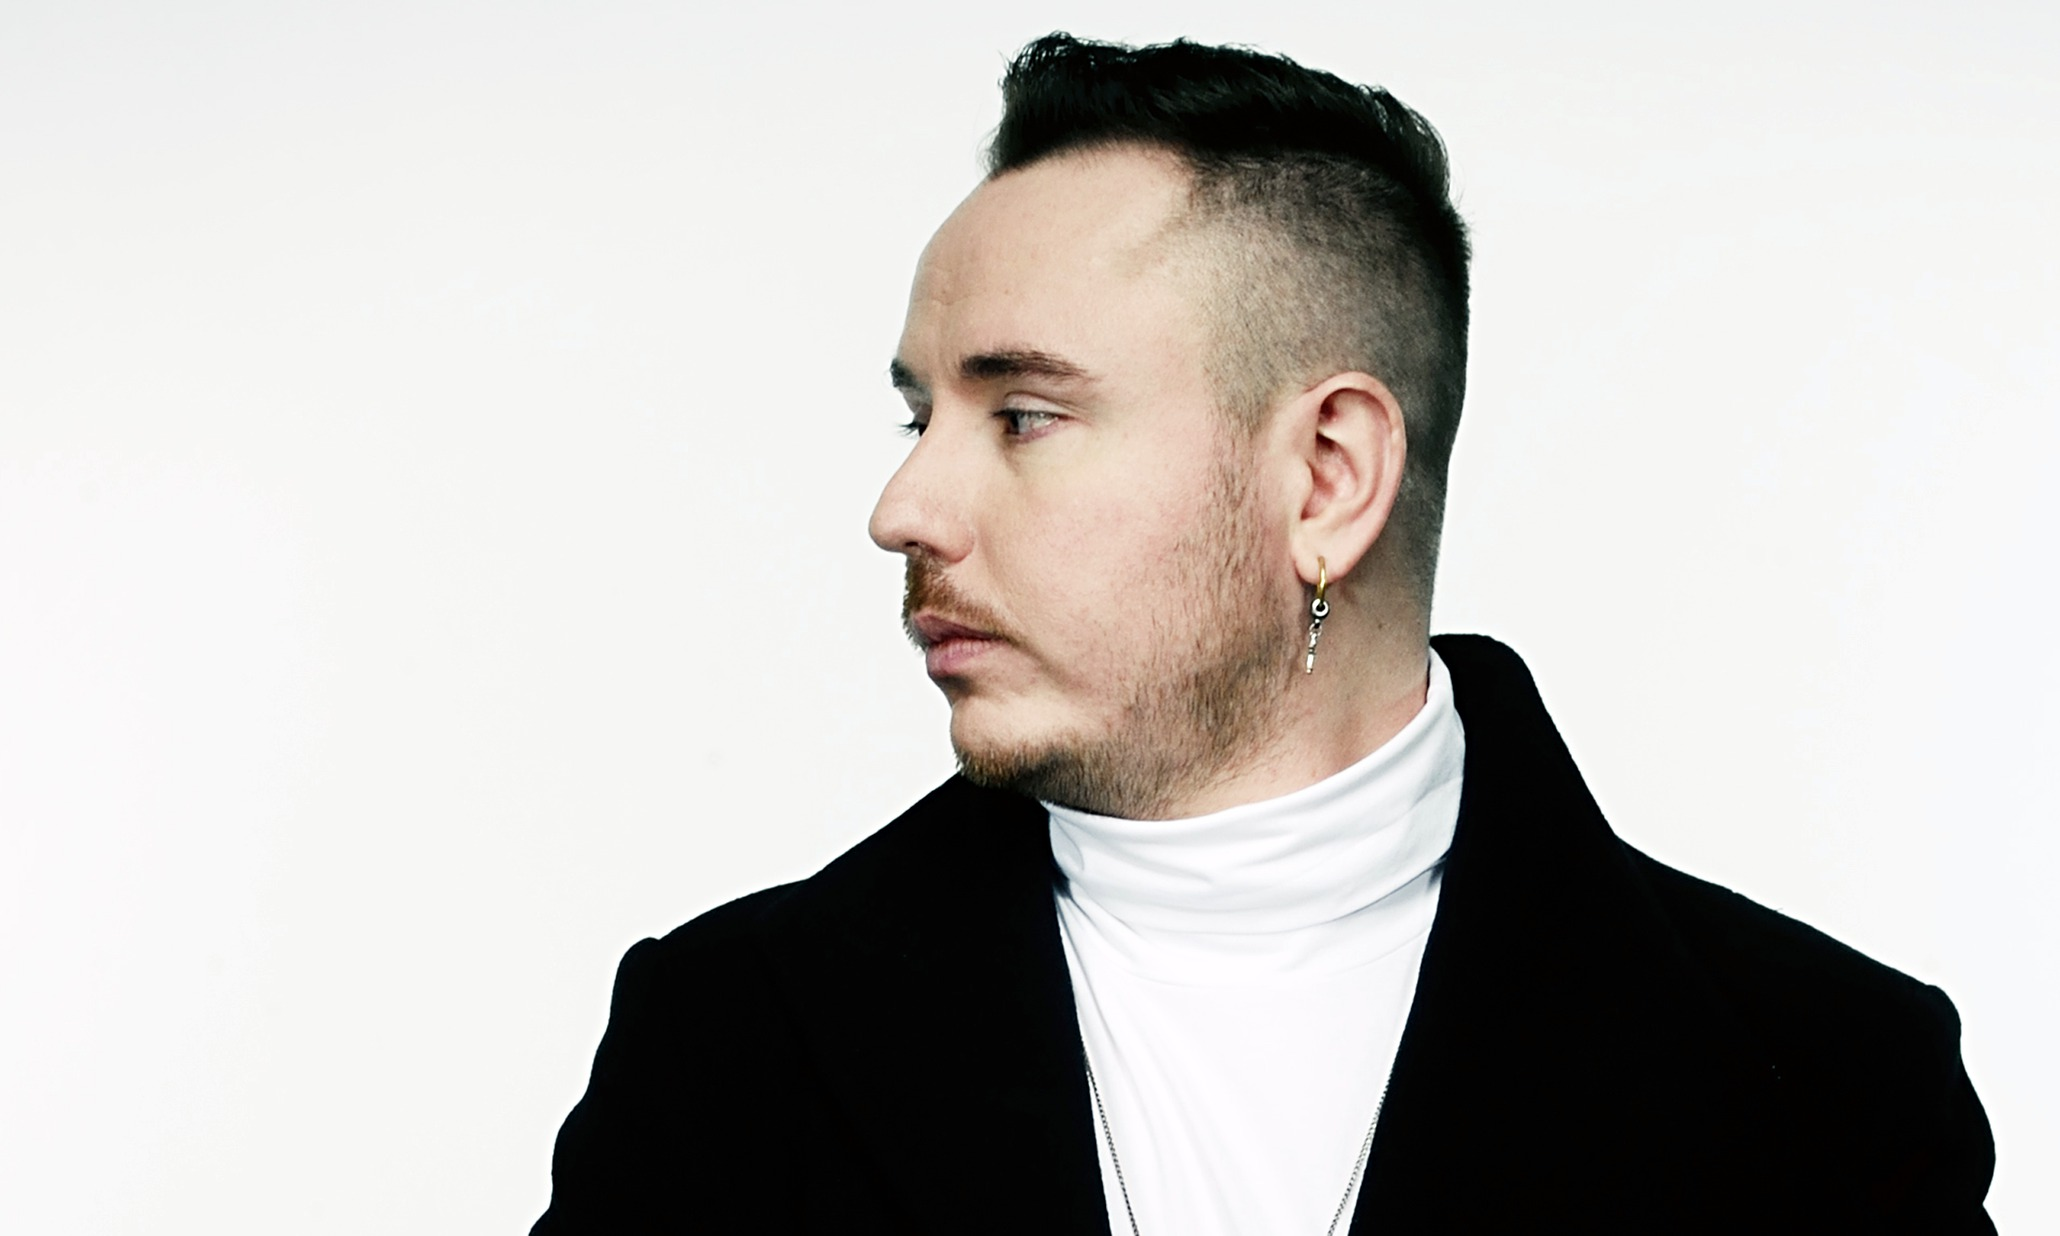 Duke Dumont earned a  million dollar salary - leaving the net worth at 3 million in 2018